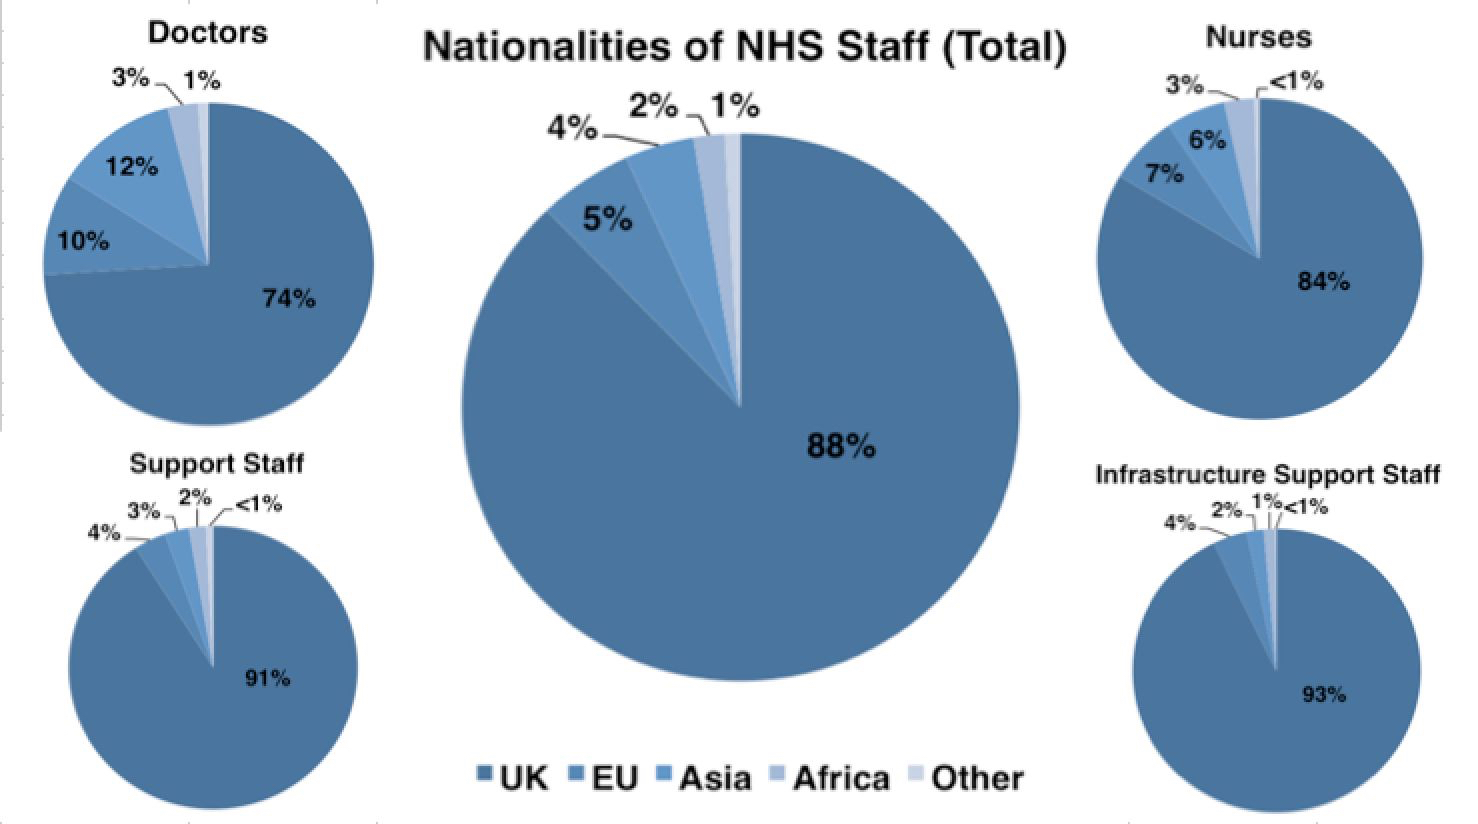 NHS_Nationality_Charts.jpg